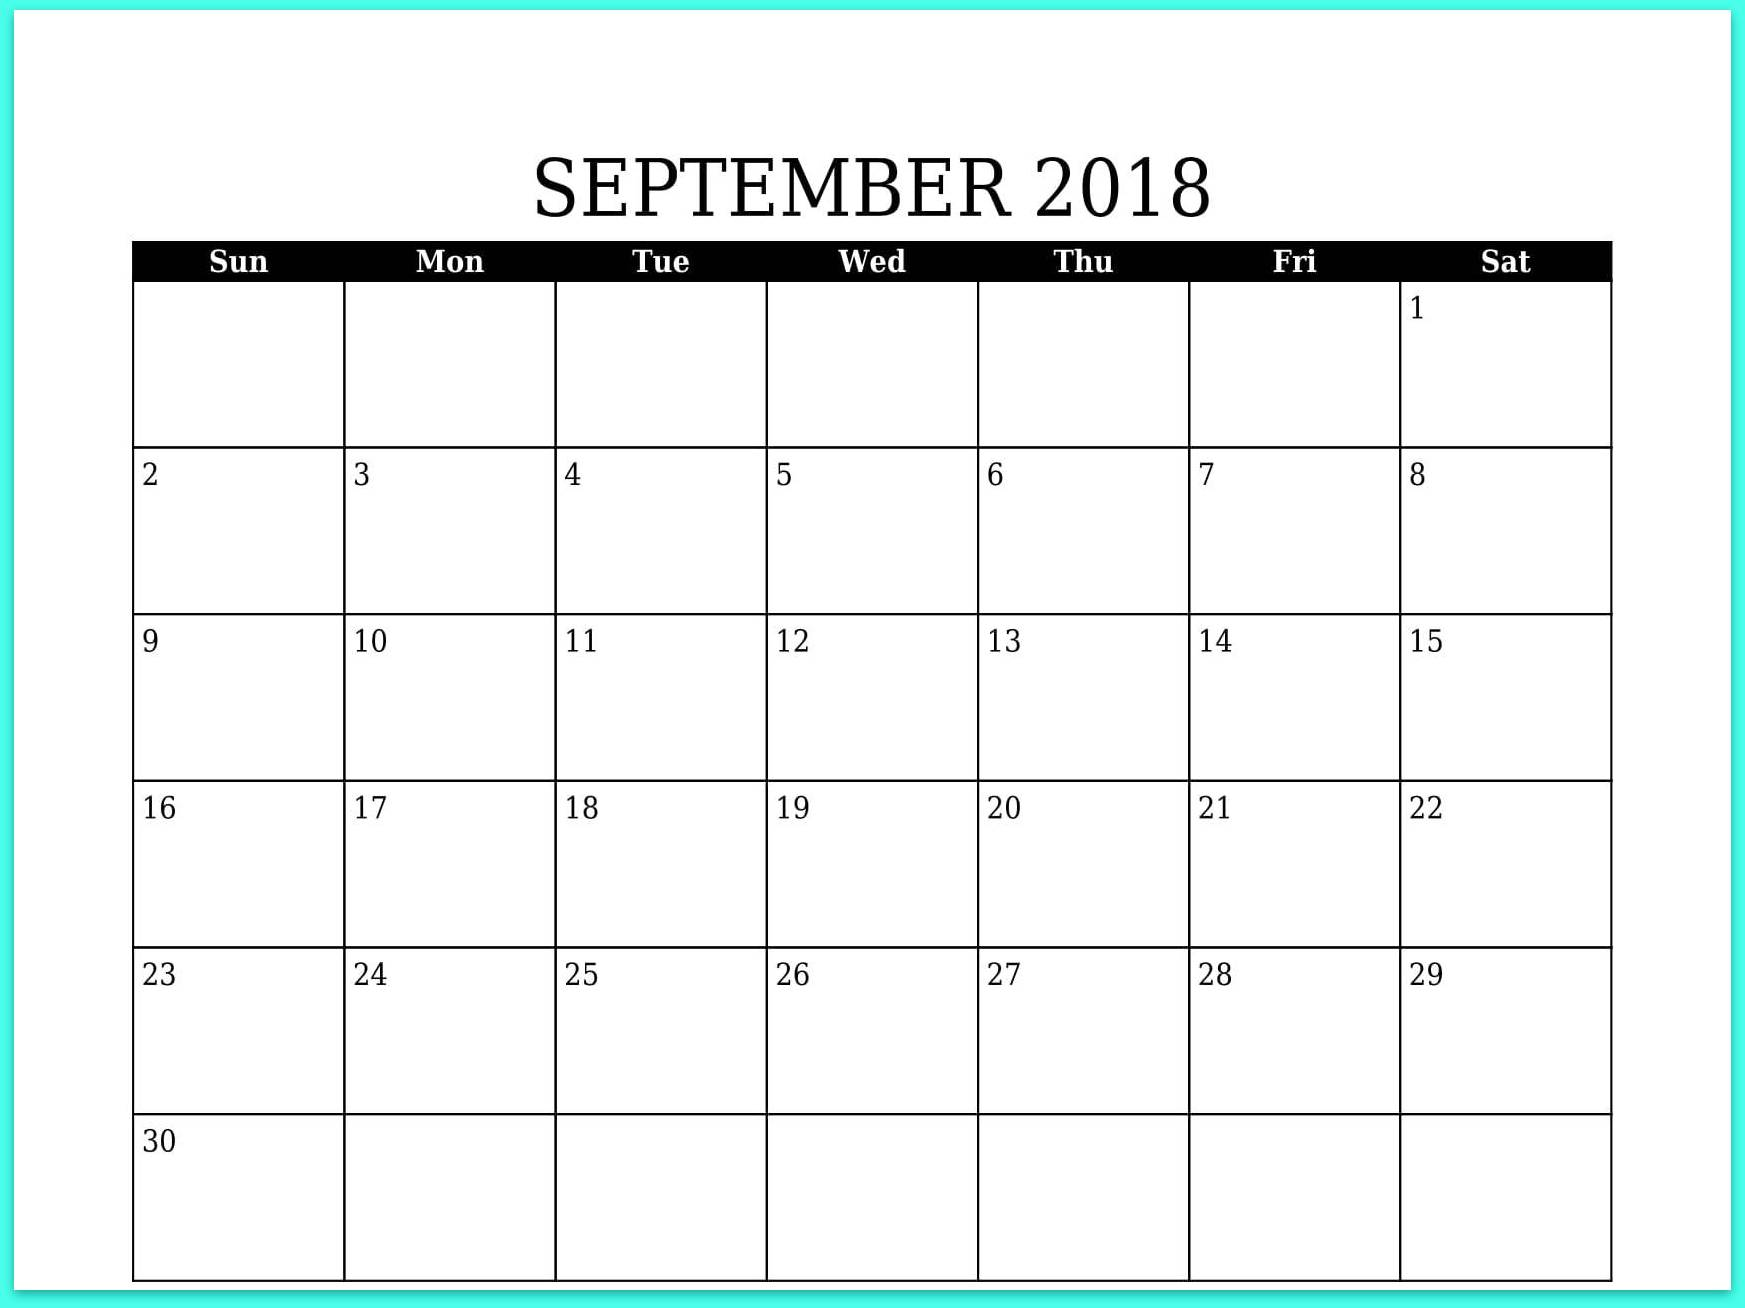 September 2018 Calendar Canada Holidays